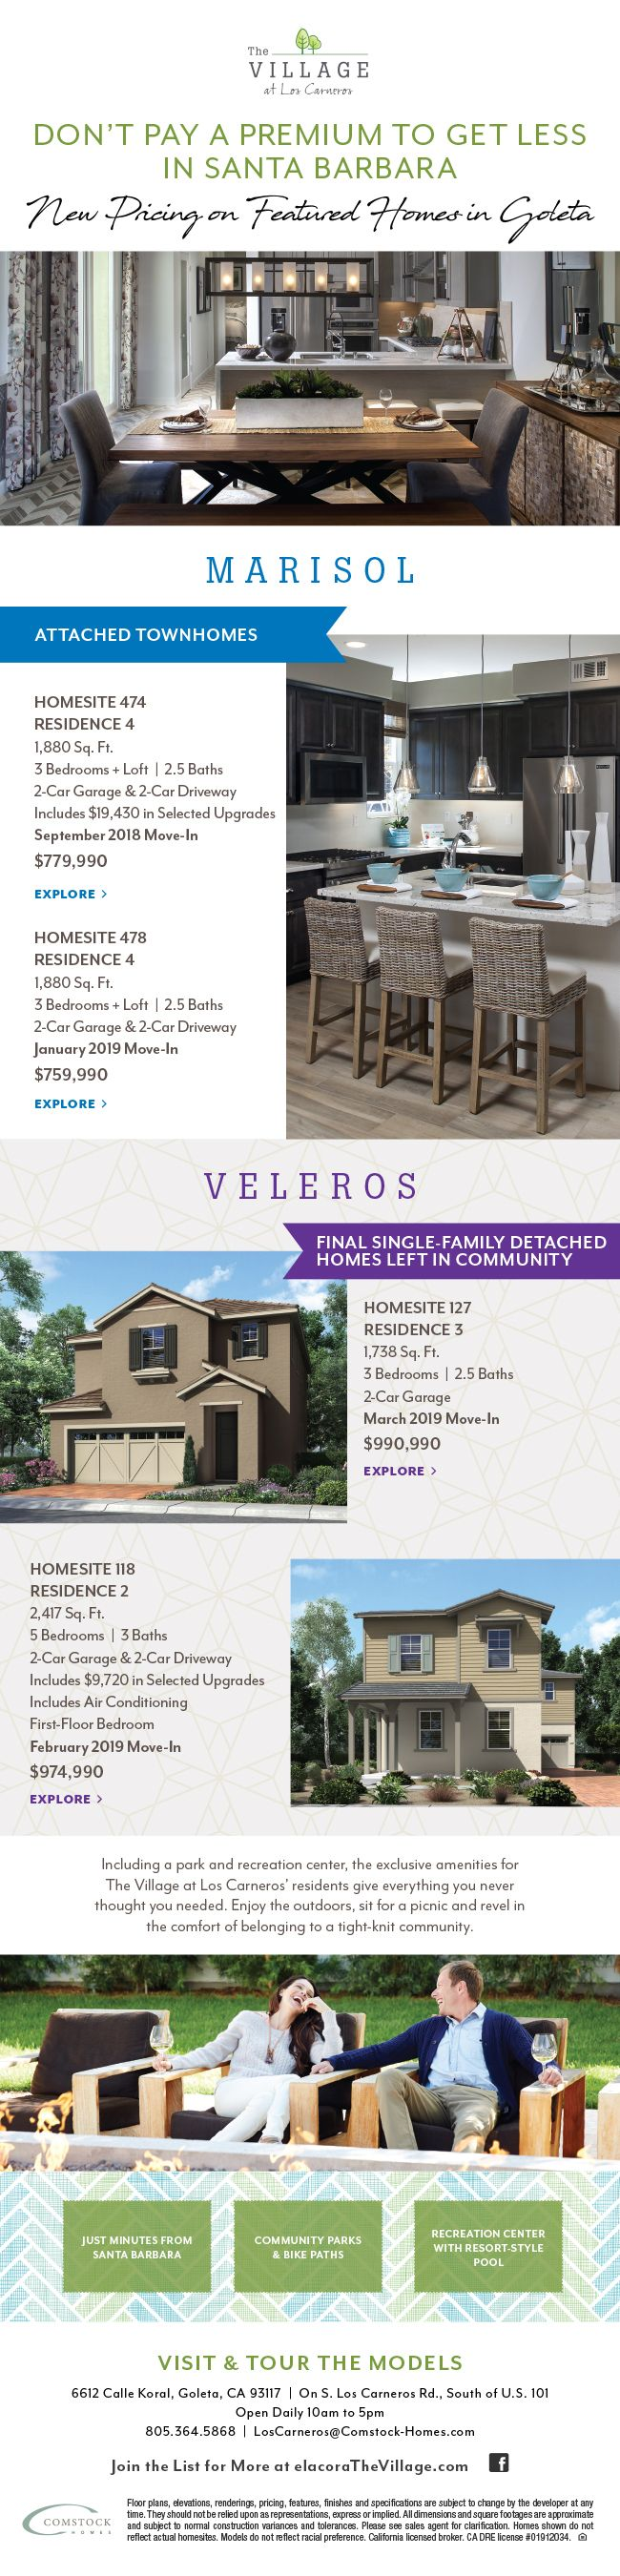 New Homes For Sale In Goleta California New Pricing On New Homes In